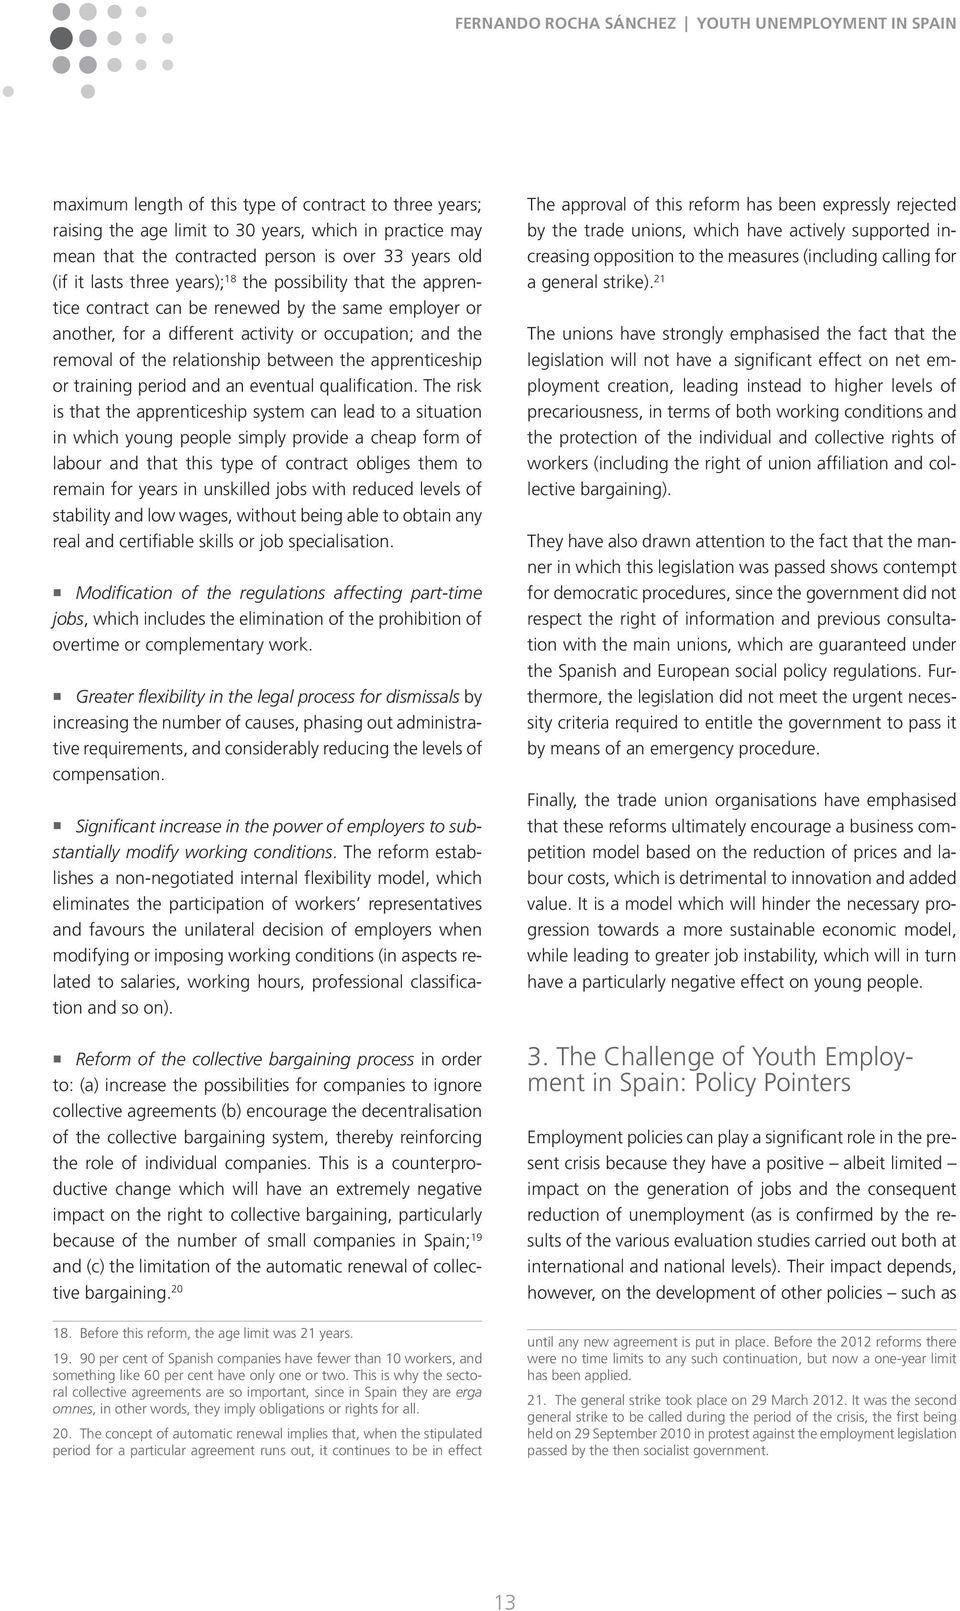 youth unemployment in spain pdf training period and an eventual qualification